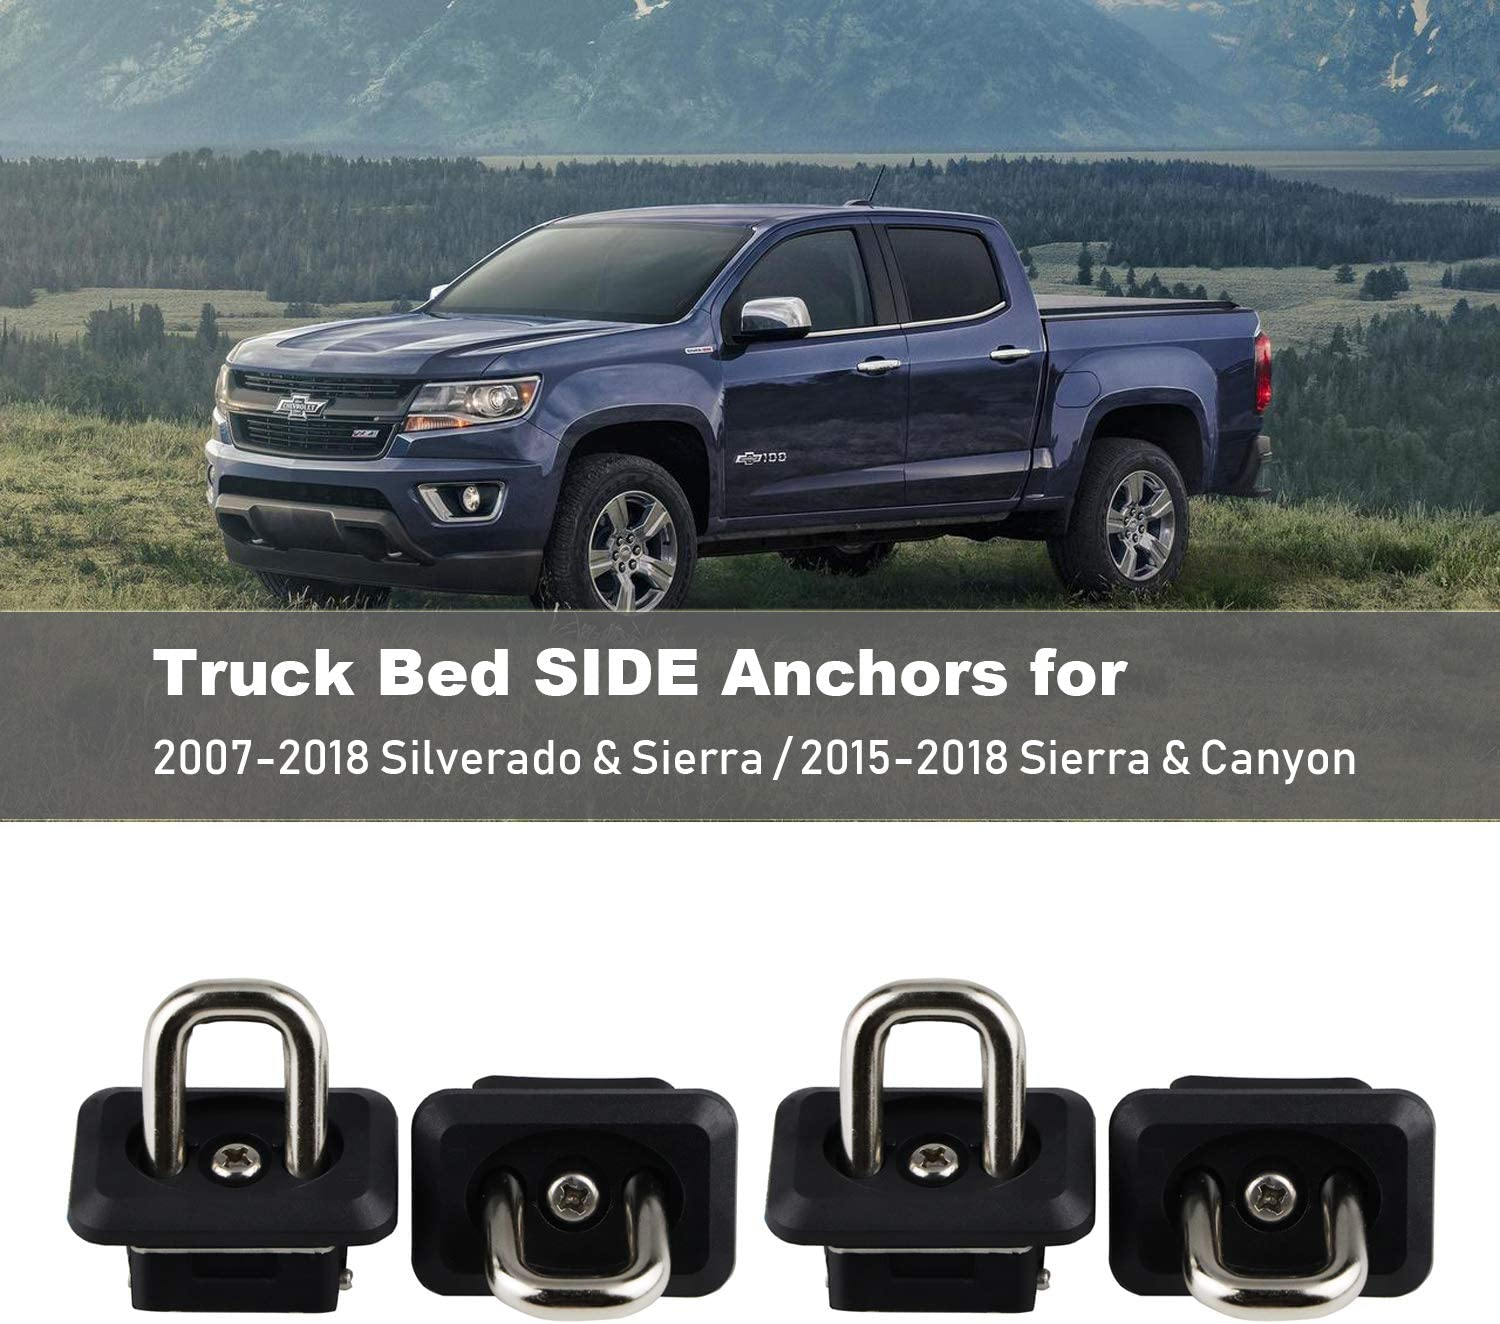 4pcs Tie Down Anchors Truck Bed Side Wall Anchor for 2007-2018 Chevy Silverdo GMC Sierra 2015-2018 Chevrolet Colorado Pickup